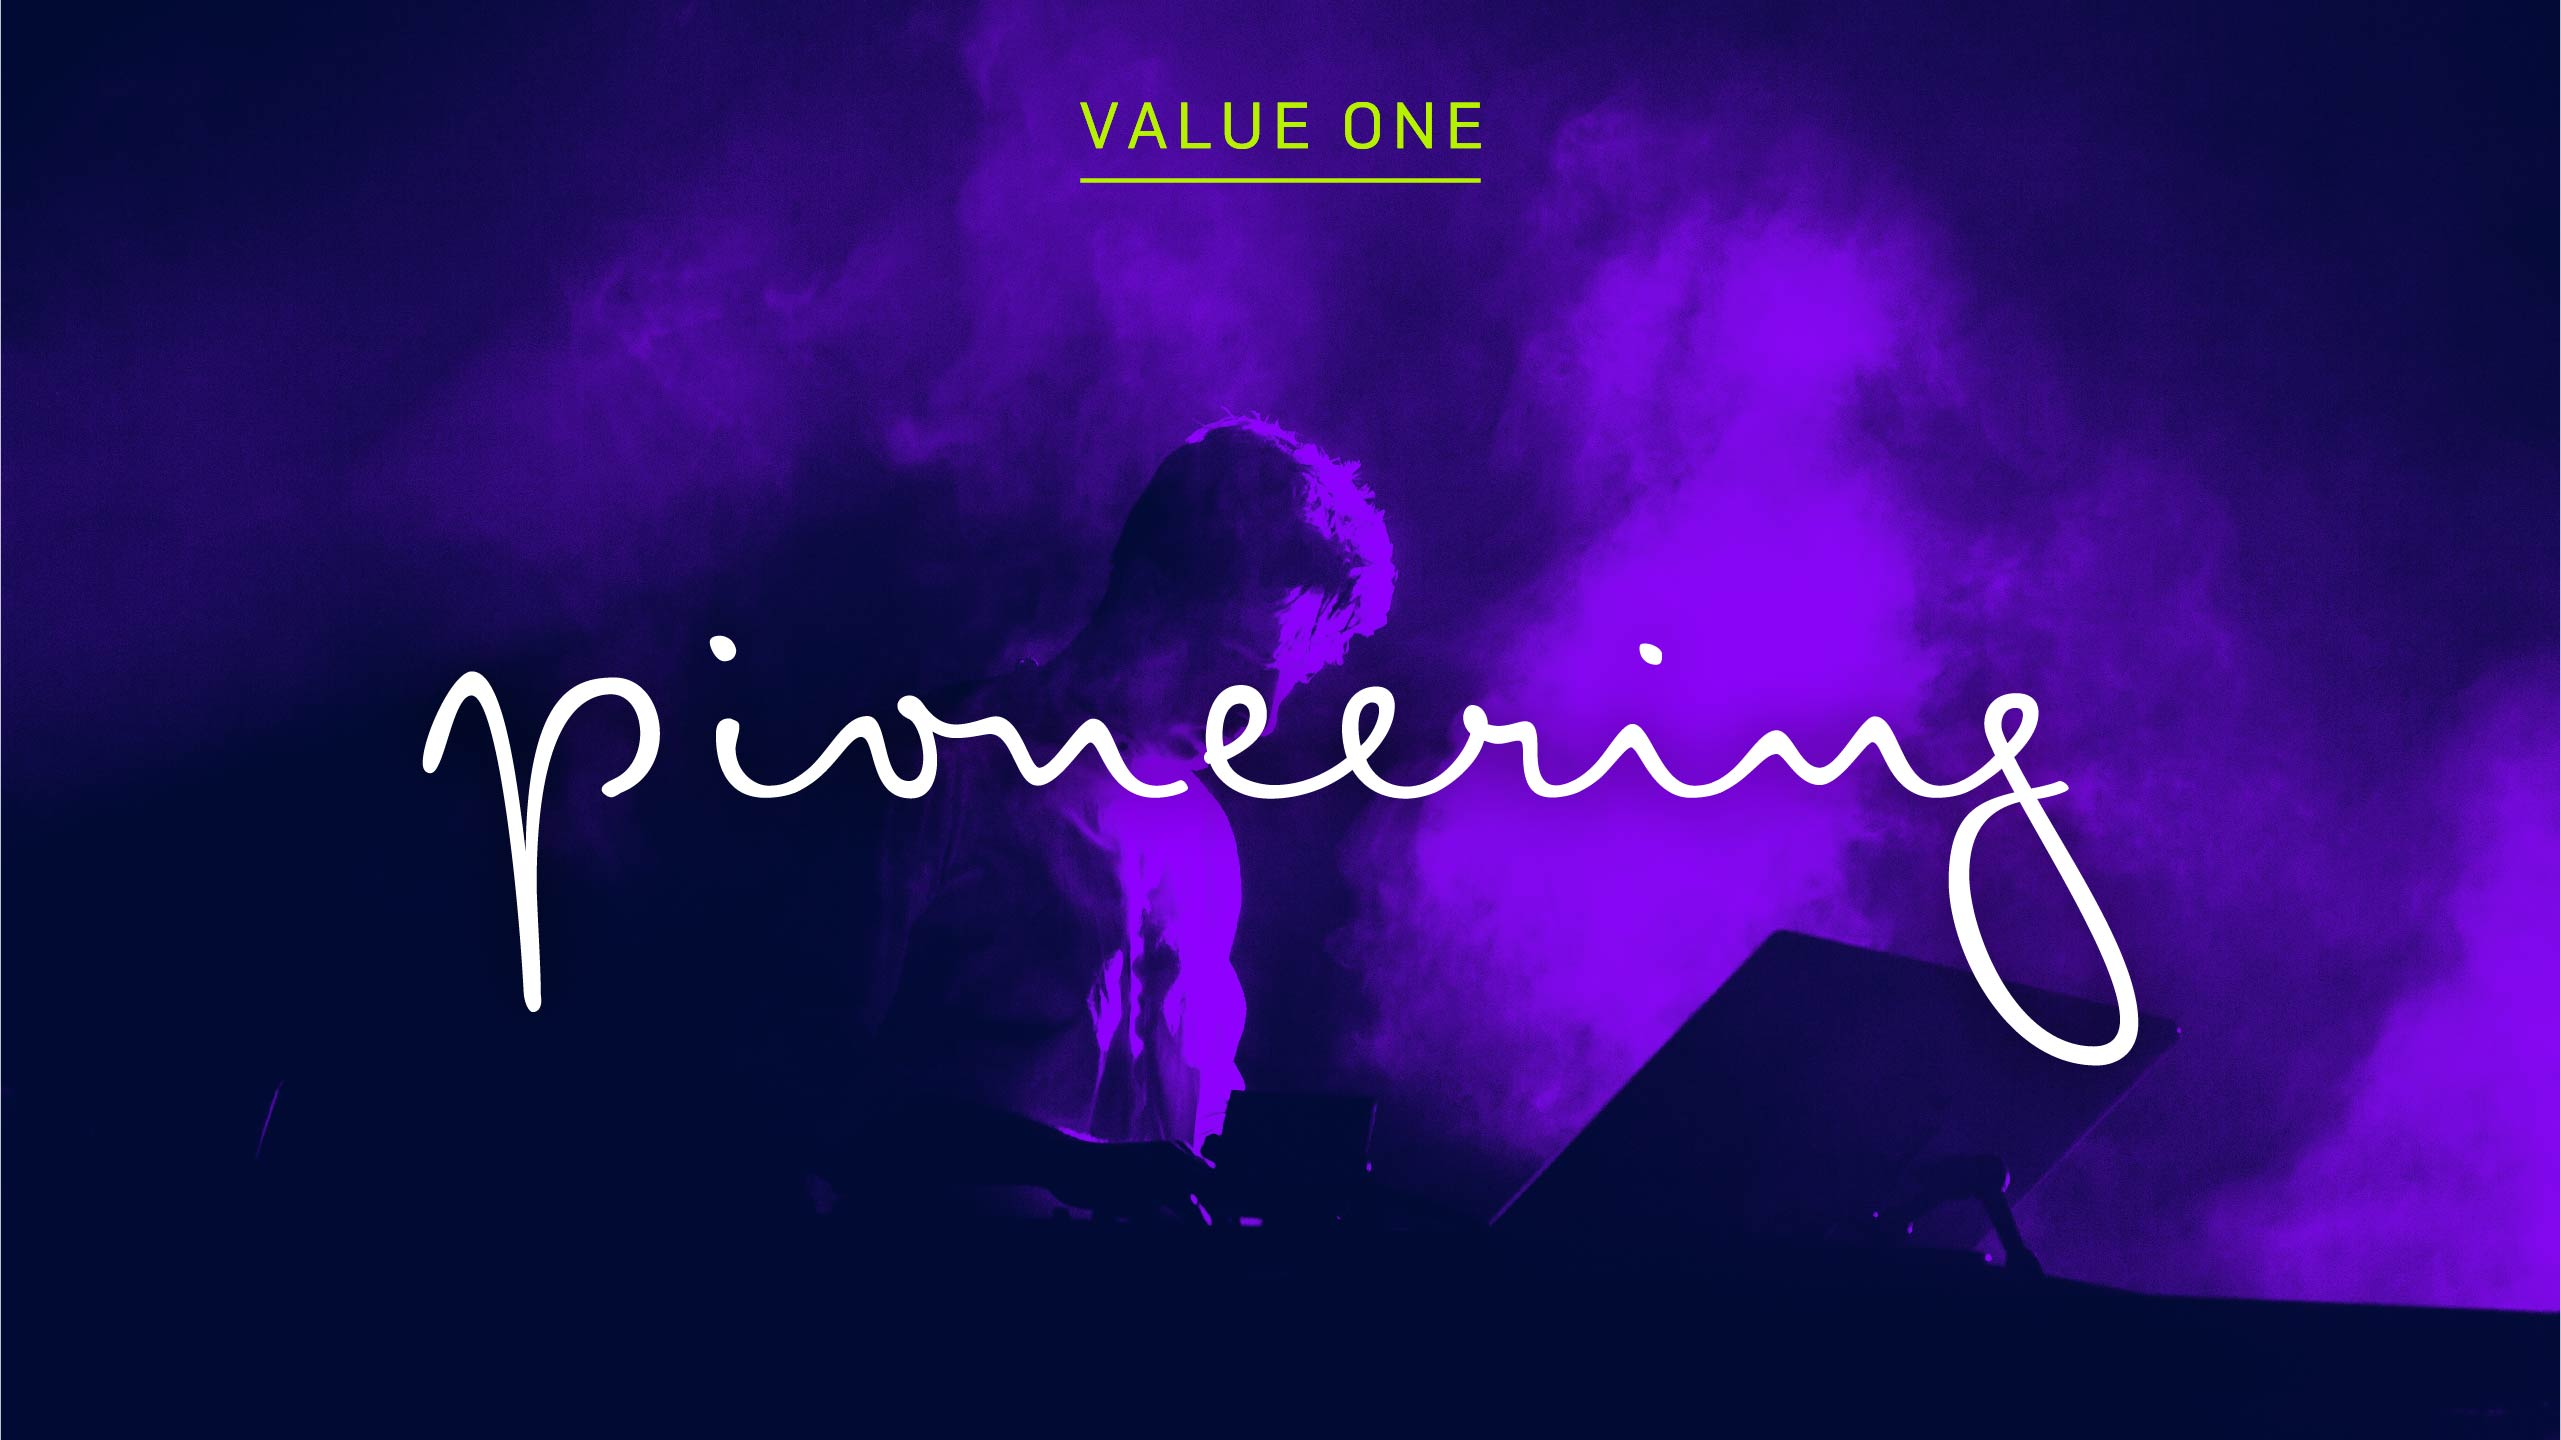 PRS Values - Pioneering